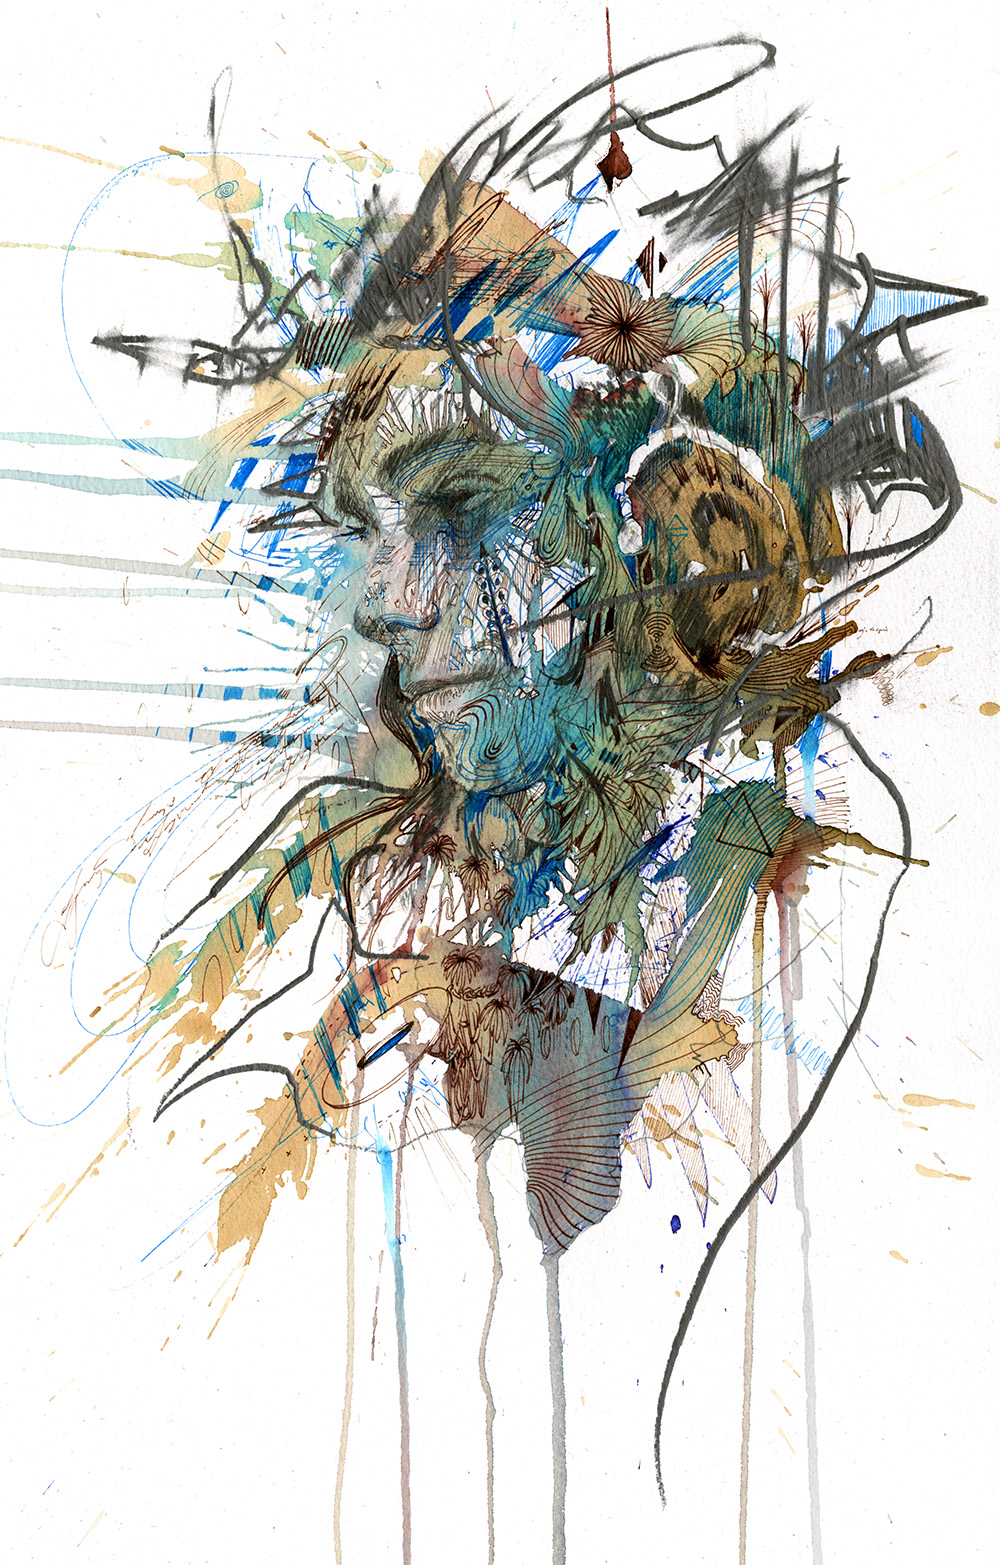 The Gathering by Carne Griffiths